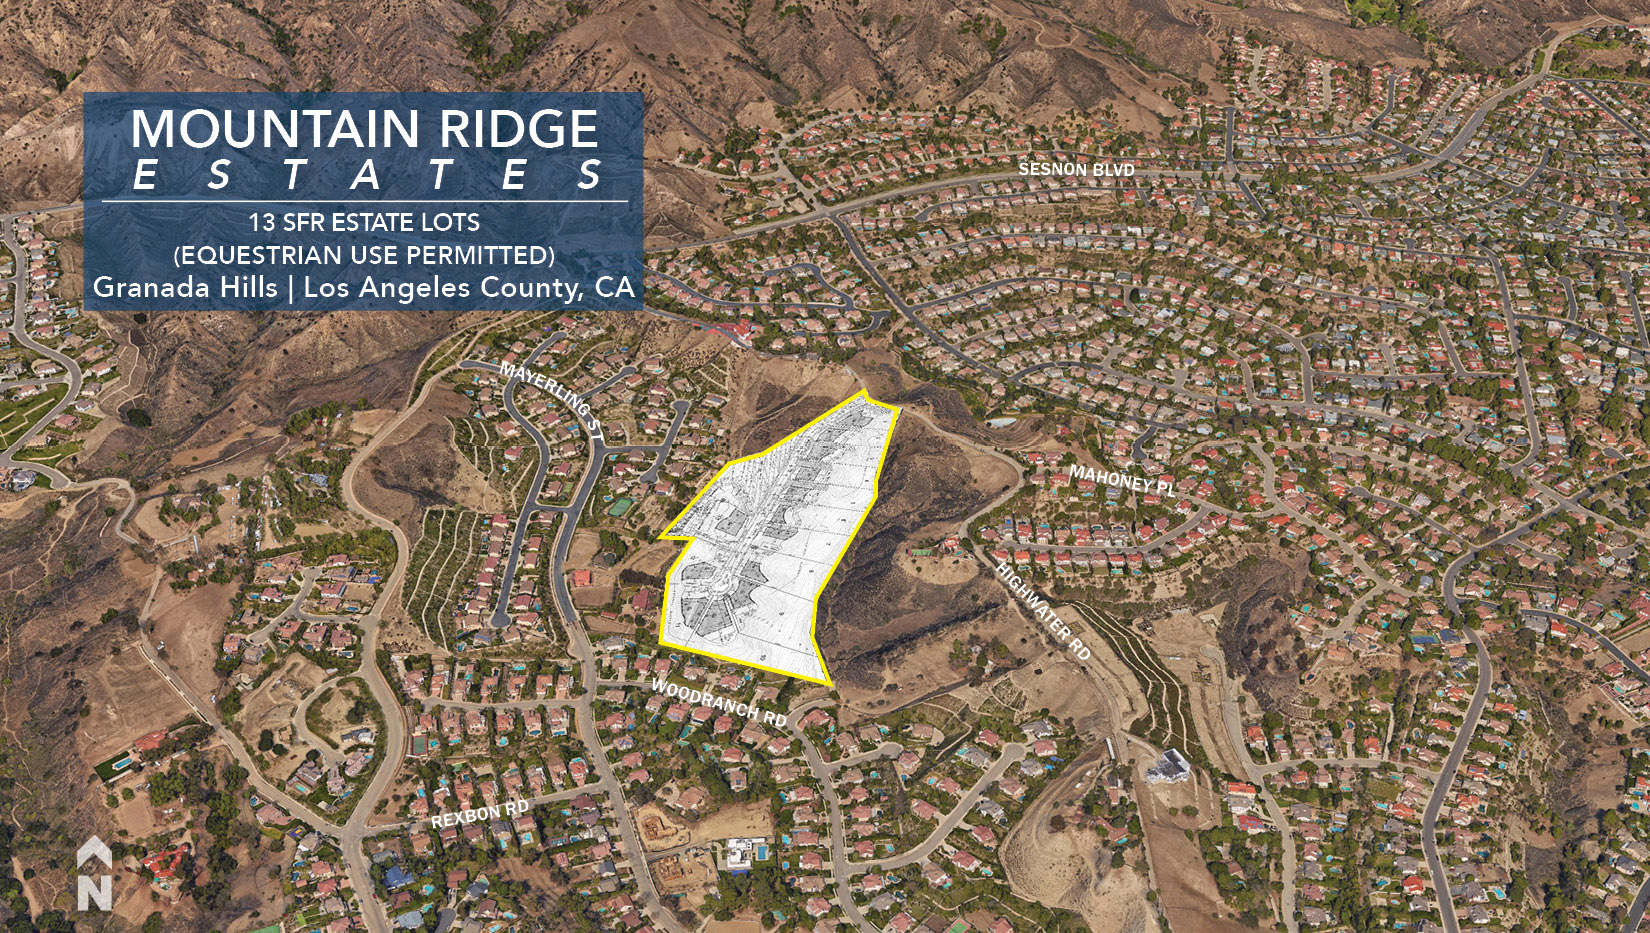 Mountain Ridge Estates | 13 SFR Estate Lots | Granada Hills ... on van nuys ca map, san fernando ca map, la tuna canyon ca map, united states ca map, conejo valley ca map, santa clarita ca map, lake forest ca map, cardiff by the sea ca map, downey ca map, east la ca map, la conchita ca map, arrowbear ca map, puente hills ca map, verdugo hills ca map, hammil valley ca map, goffs ca map, feather falls ca map, north hills ca map, 91354 zip code map, whitethorn ca map,